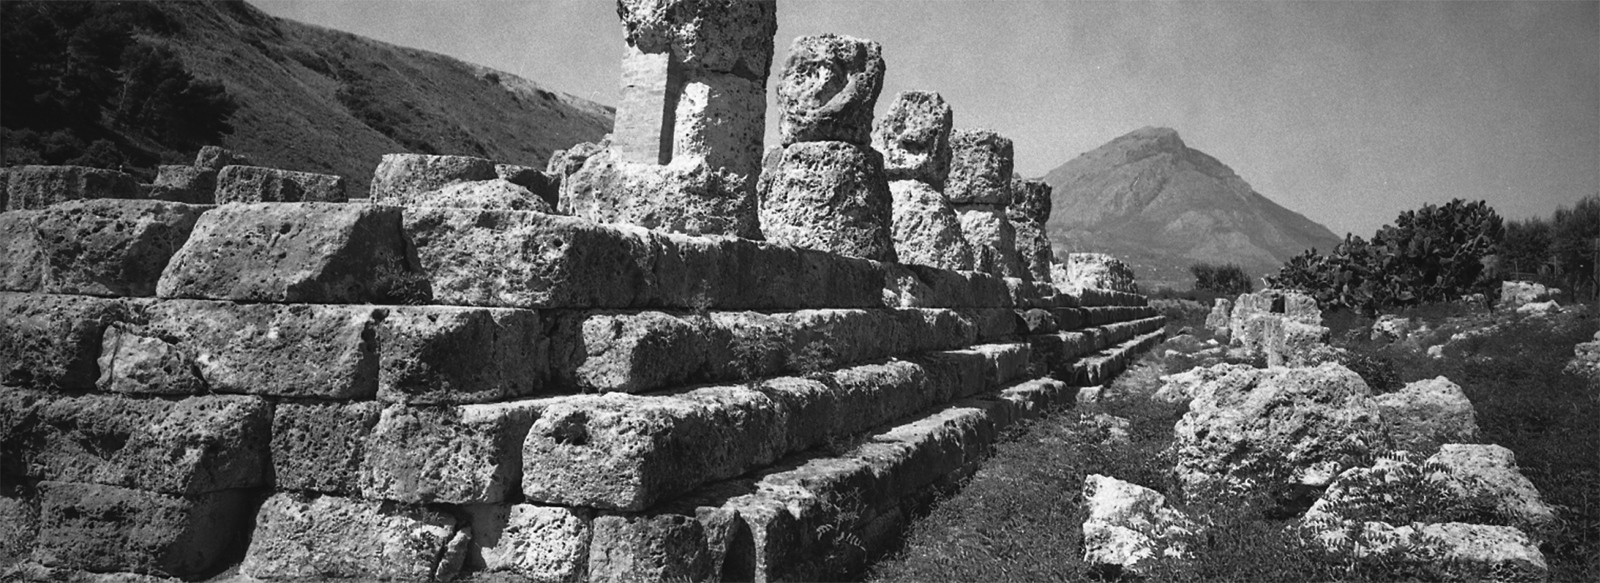 Art and Documentary Photography - Loading Archeologia_in_Sicilia___Fabio_Sgroi_028_.jpg